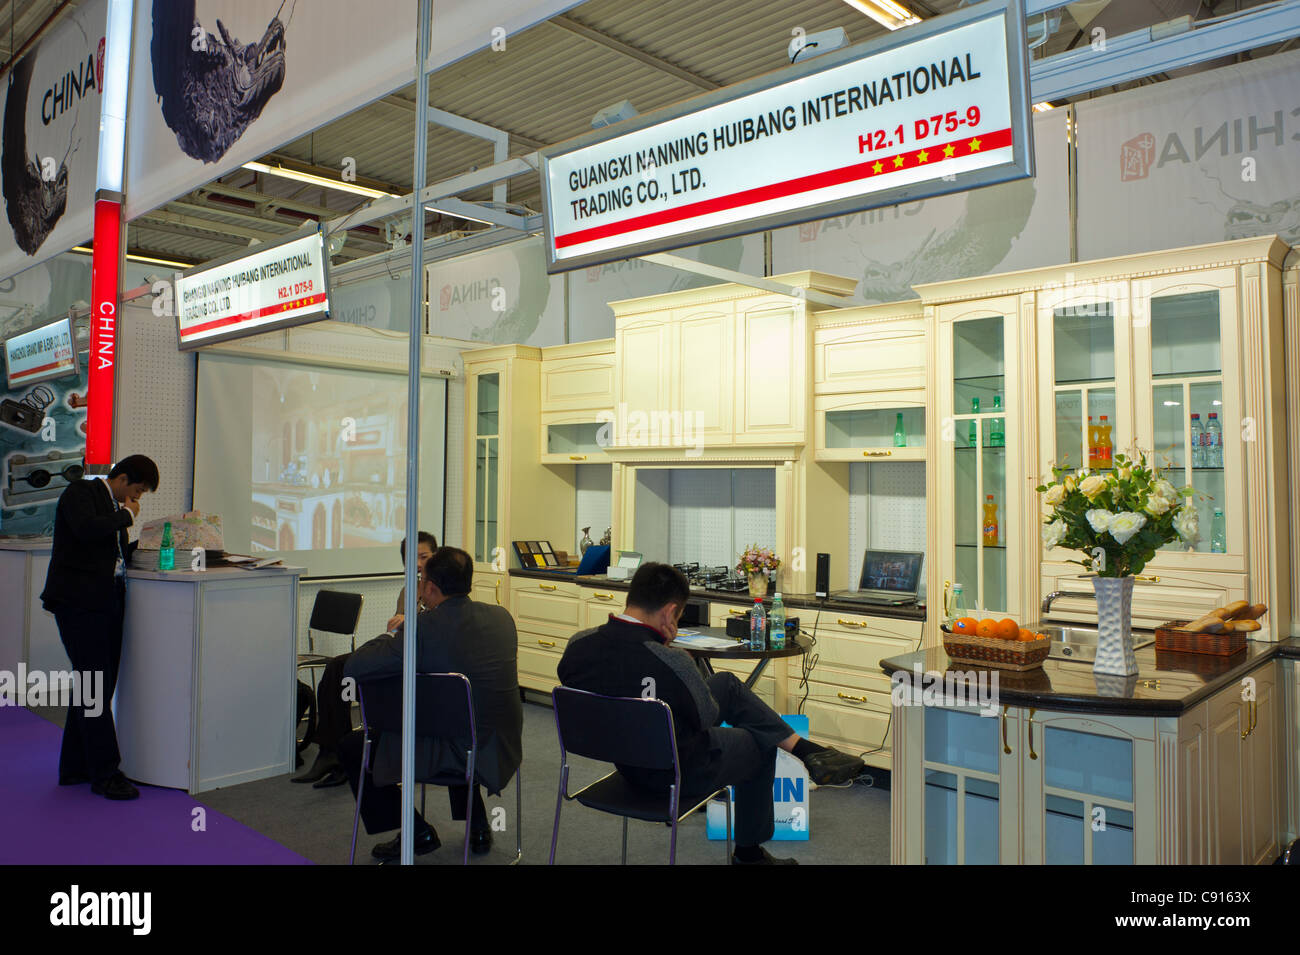 Paris, France, Batimat Construction Materials Trade Show, 2011  Chinese Companies Stalls 'Guangxi Nanning Hubang - Stock Image